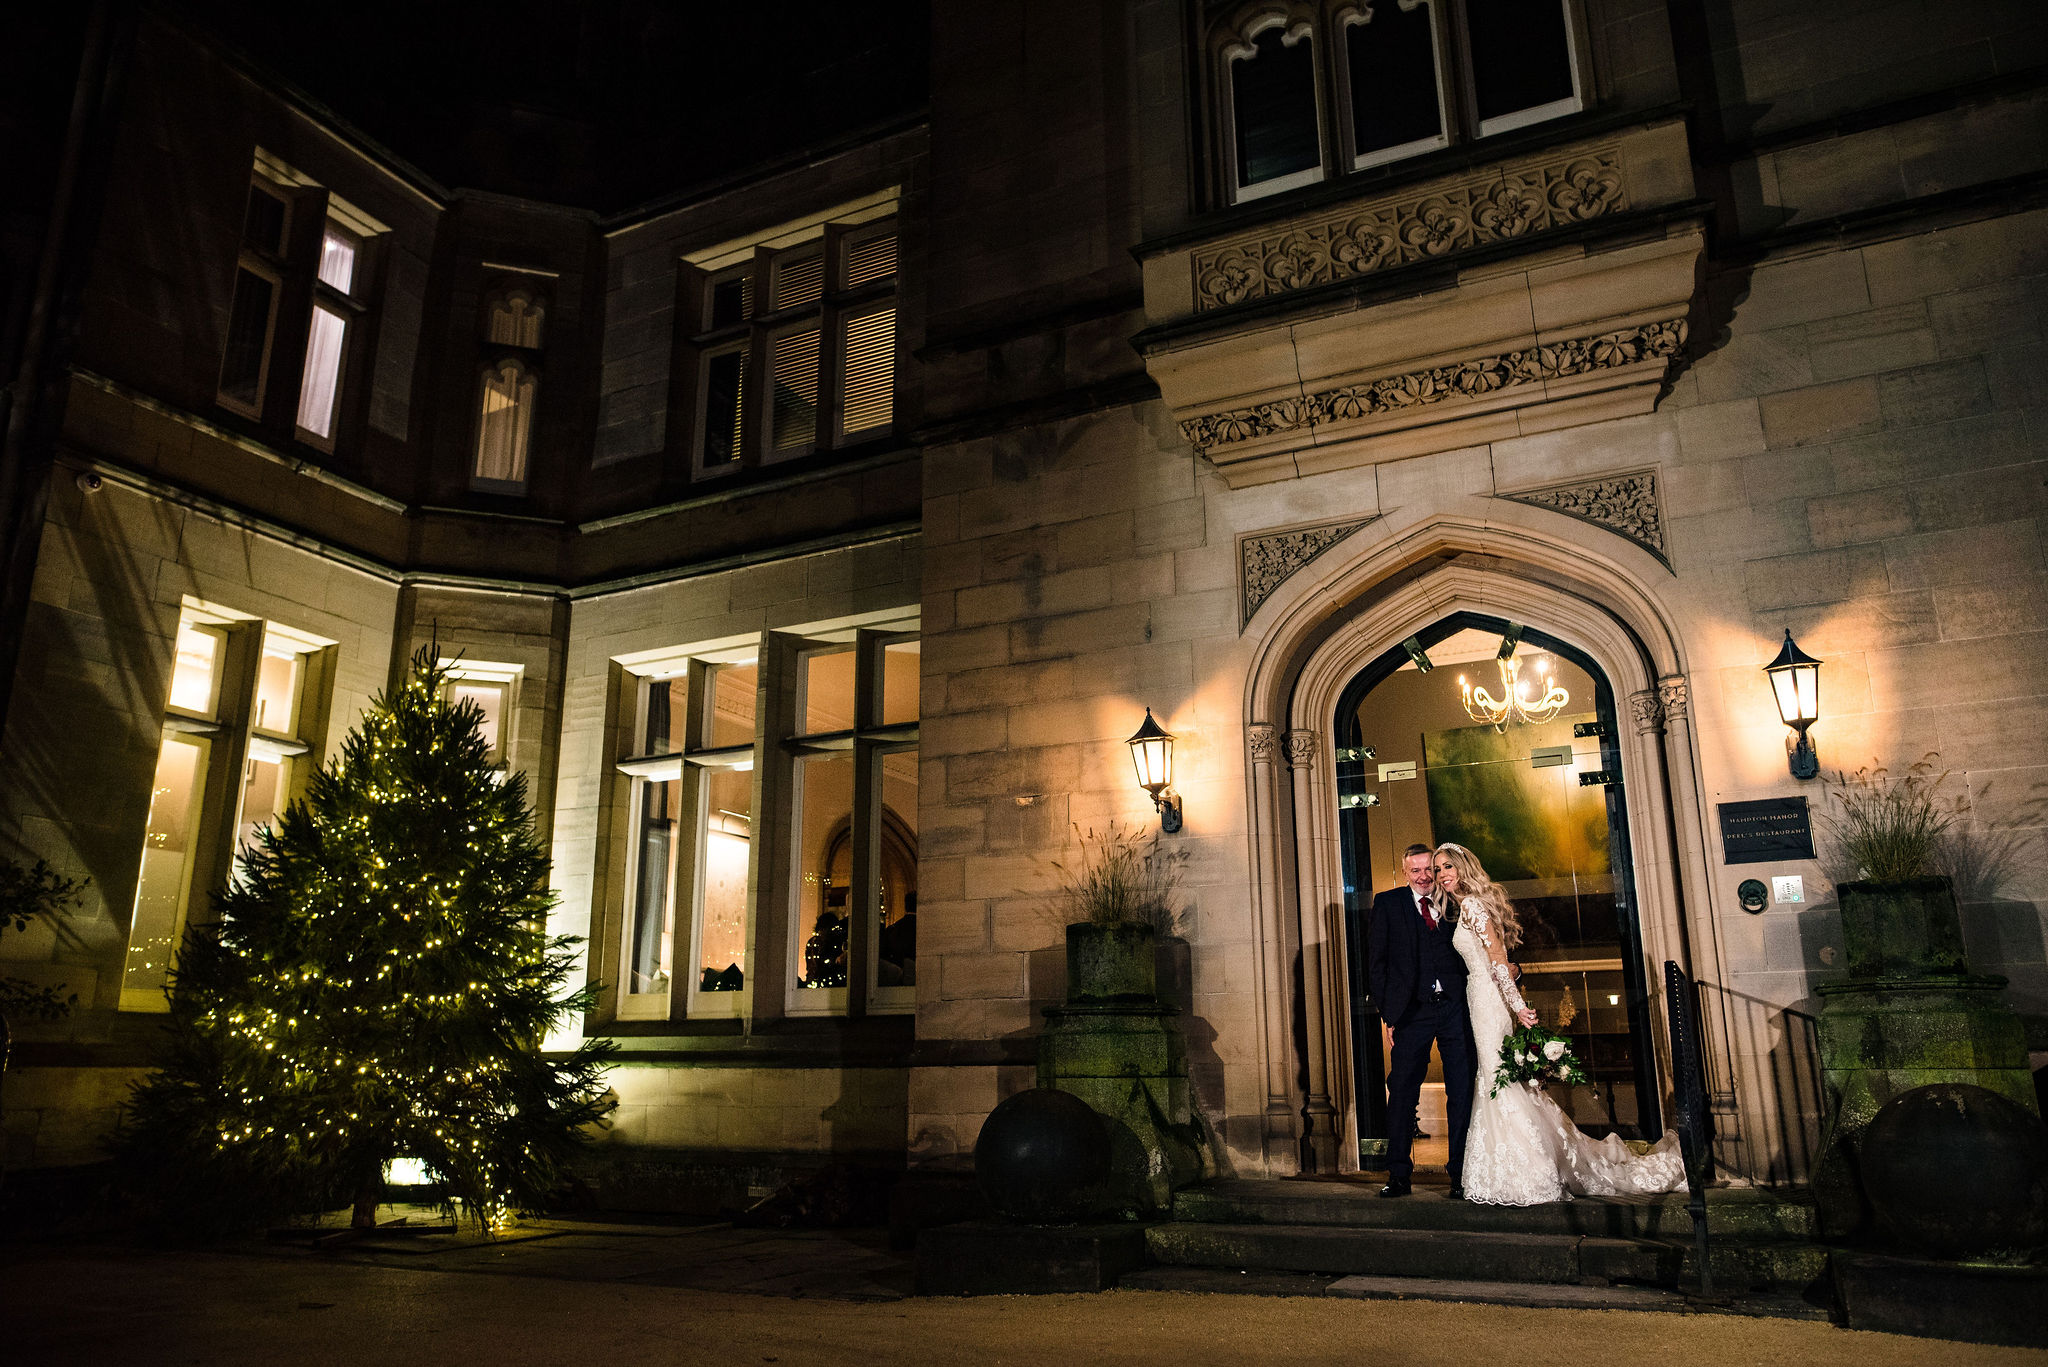 Christmas Hampton Manor renewal of vows celebrant ceremony